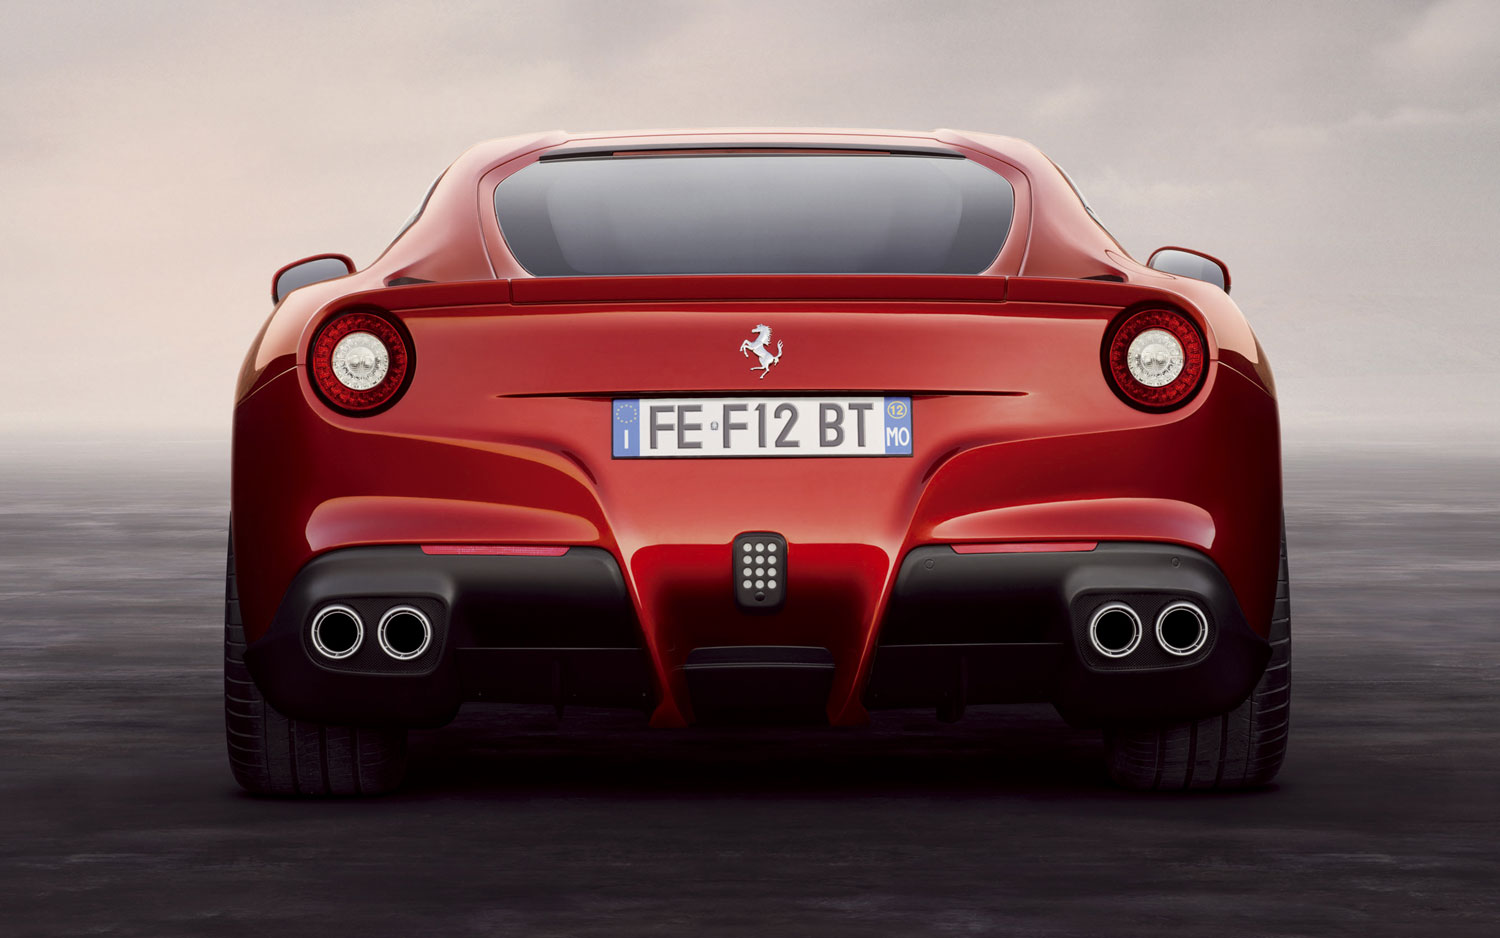 feature flick: this is the 2013 ferrari f12 berlinetta